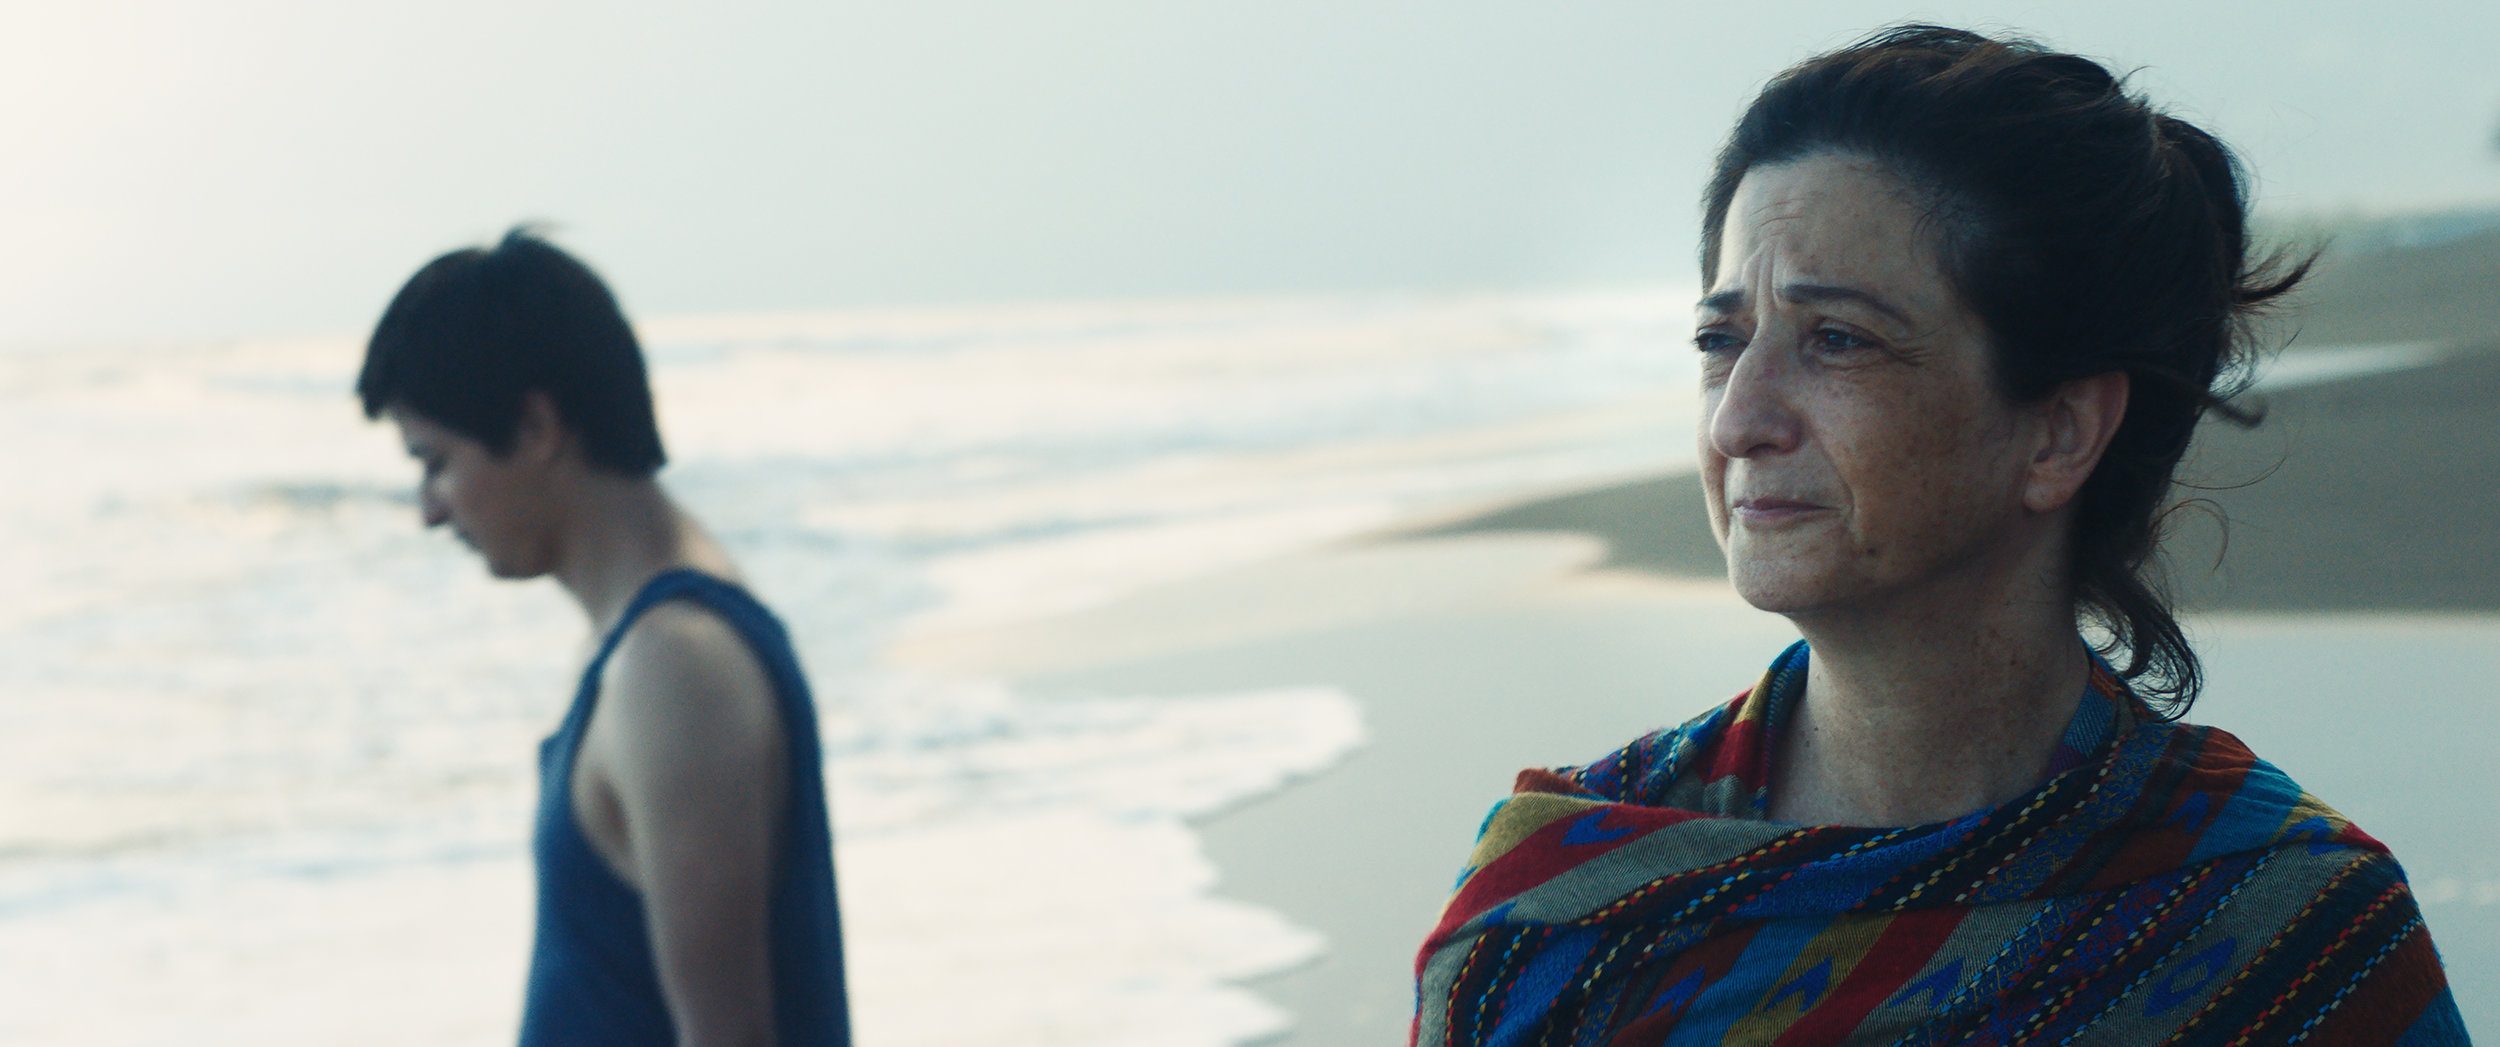 BELGIUM:  Our Mothers  /  Nuestras madres   A film by César Díaz  In an interesting and surprising geopolitical twist, Belgium has selected the debut feature by Guatemalan-born director César Díaz. Winner of the Cámera d'Or at the last edition of the Cannes Film Festival,  Our Mothers  is a fiction features that looks at the horrors of genocide.  The film is set in contemporary Guatemala, as the whole country is immersed in the trial of the soldiers who sparked the civil war, and the victim statements come one after another. Ernesto is a young anthropologist working for the Forensic Foundation; his job is to identify the missing. One day, while hearing the account of an old woman, he thinks he has found a lead that might guide him to his father, a guerrillero who went missing during the war. Against his mother's wishes, he flings himself body and soul into the case, looking for truth and resilience.  The film has been acquired in the U.S. by Outsider Pictures with an expected theatrical release in early 2020.